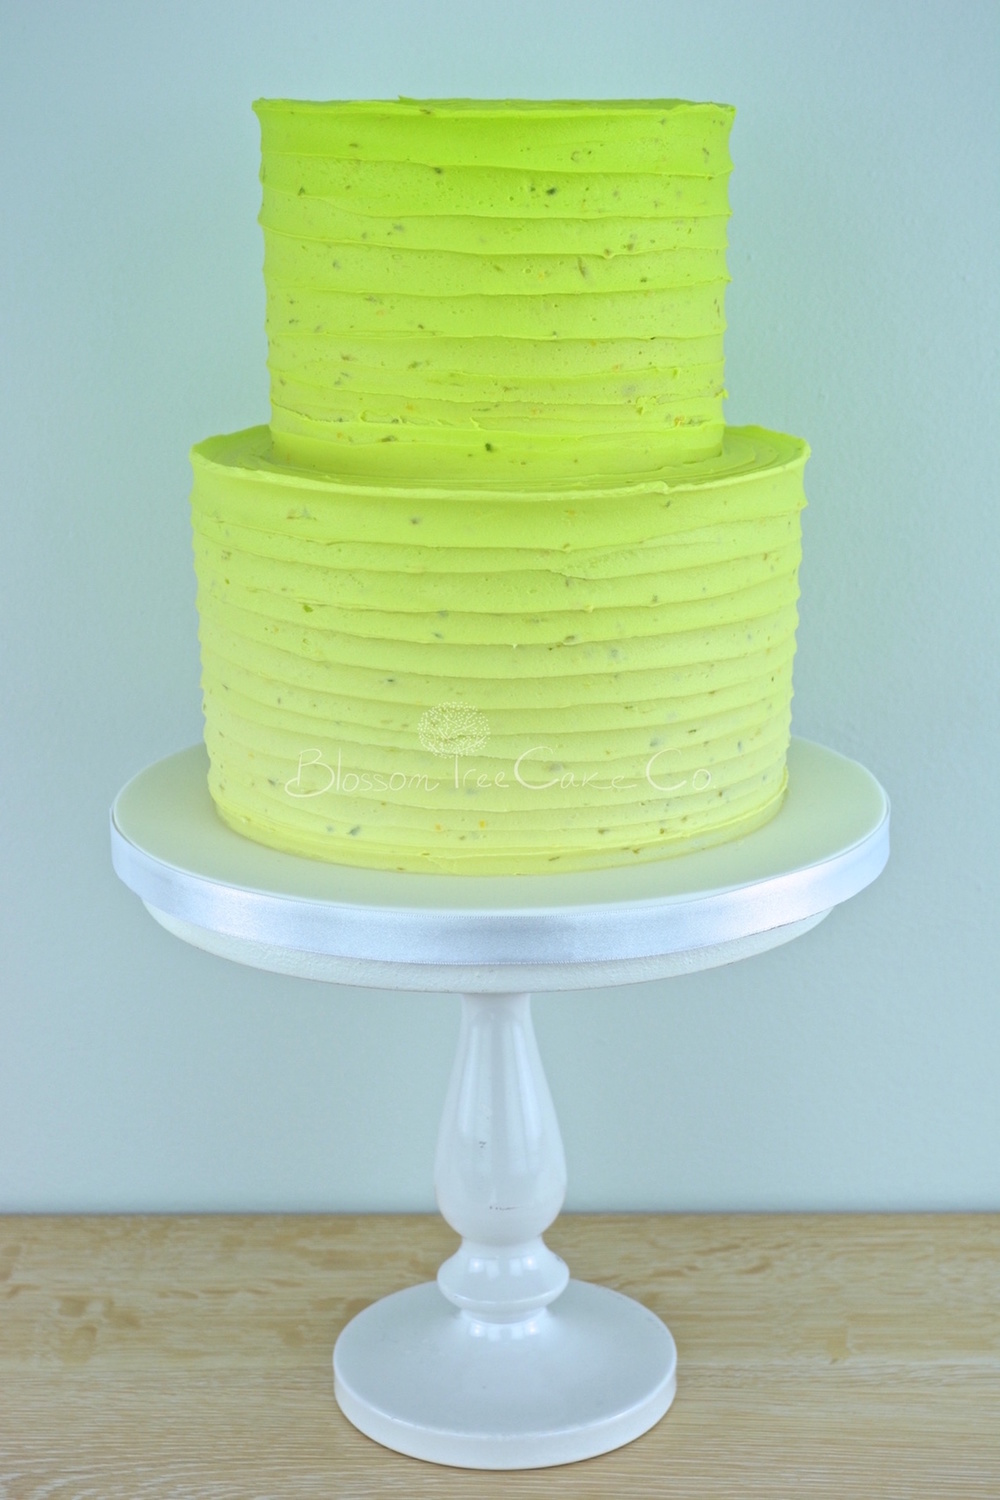 Lime Ombre celebration cake by Blossom Tree Cake Co.jpg